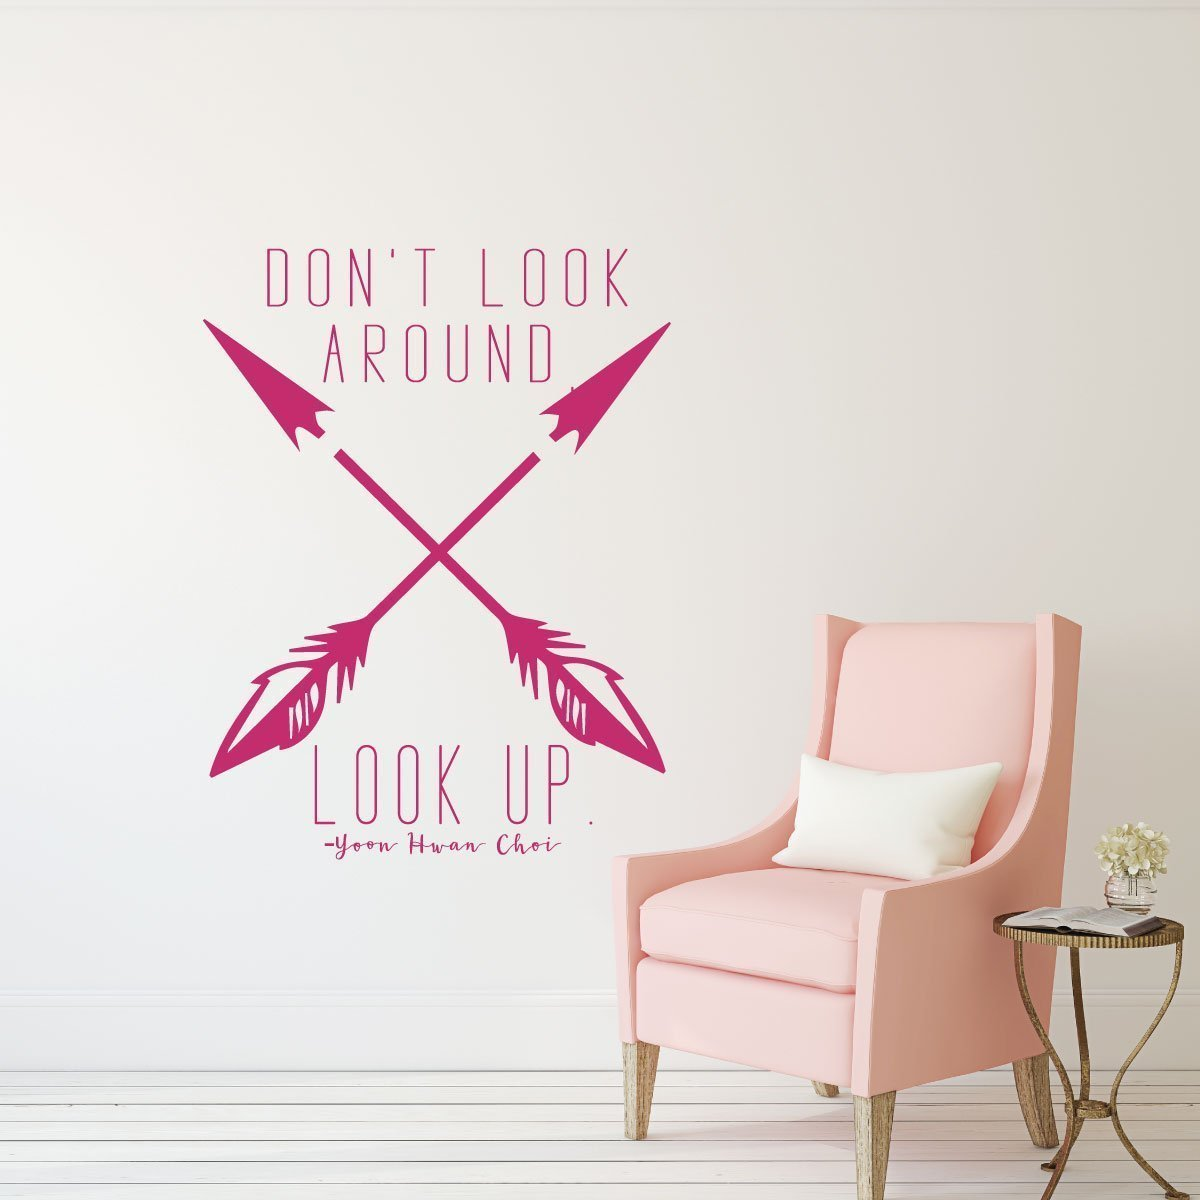 LDS Quotes - Don't Look Around, Look UP - Religious Decals for Home, Teen Girl Bedroom Wall Art Decor